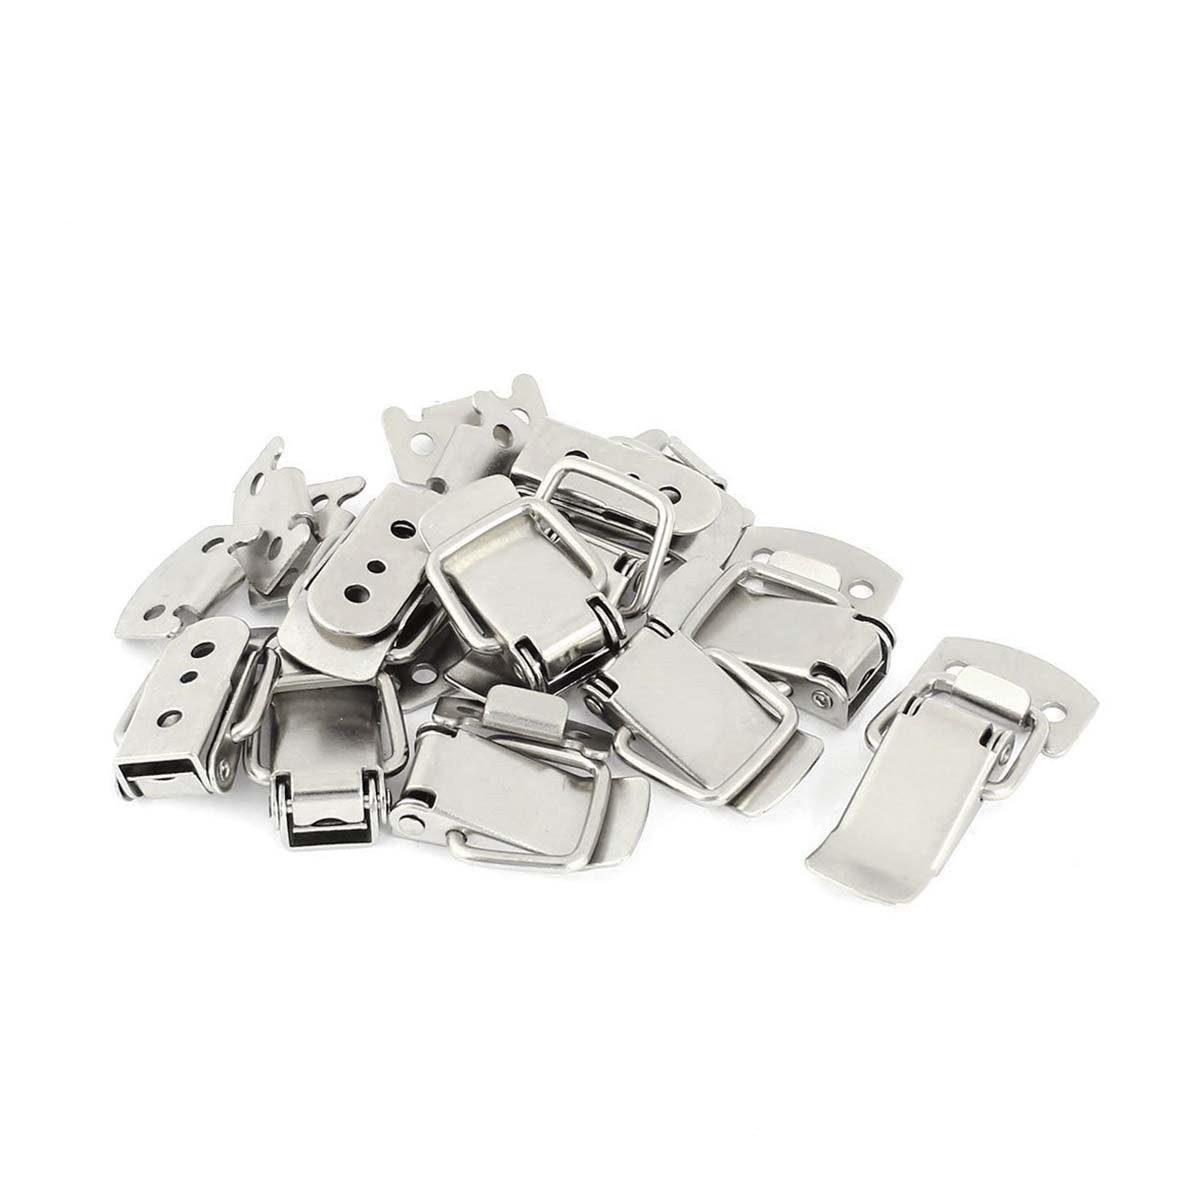 Saim Stainless Steel Case Chest Box Spring Draw Toggle Latch Catch Hasp , 4 Set LS17032100130